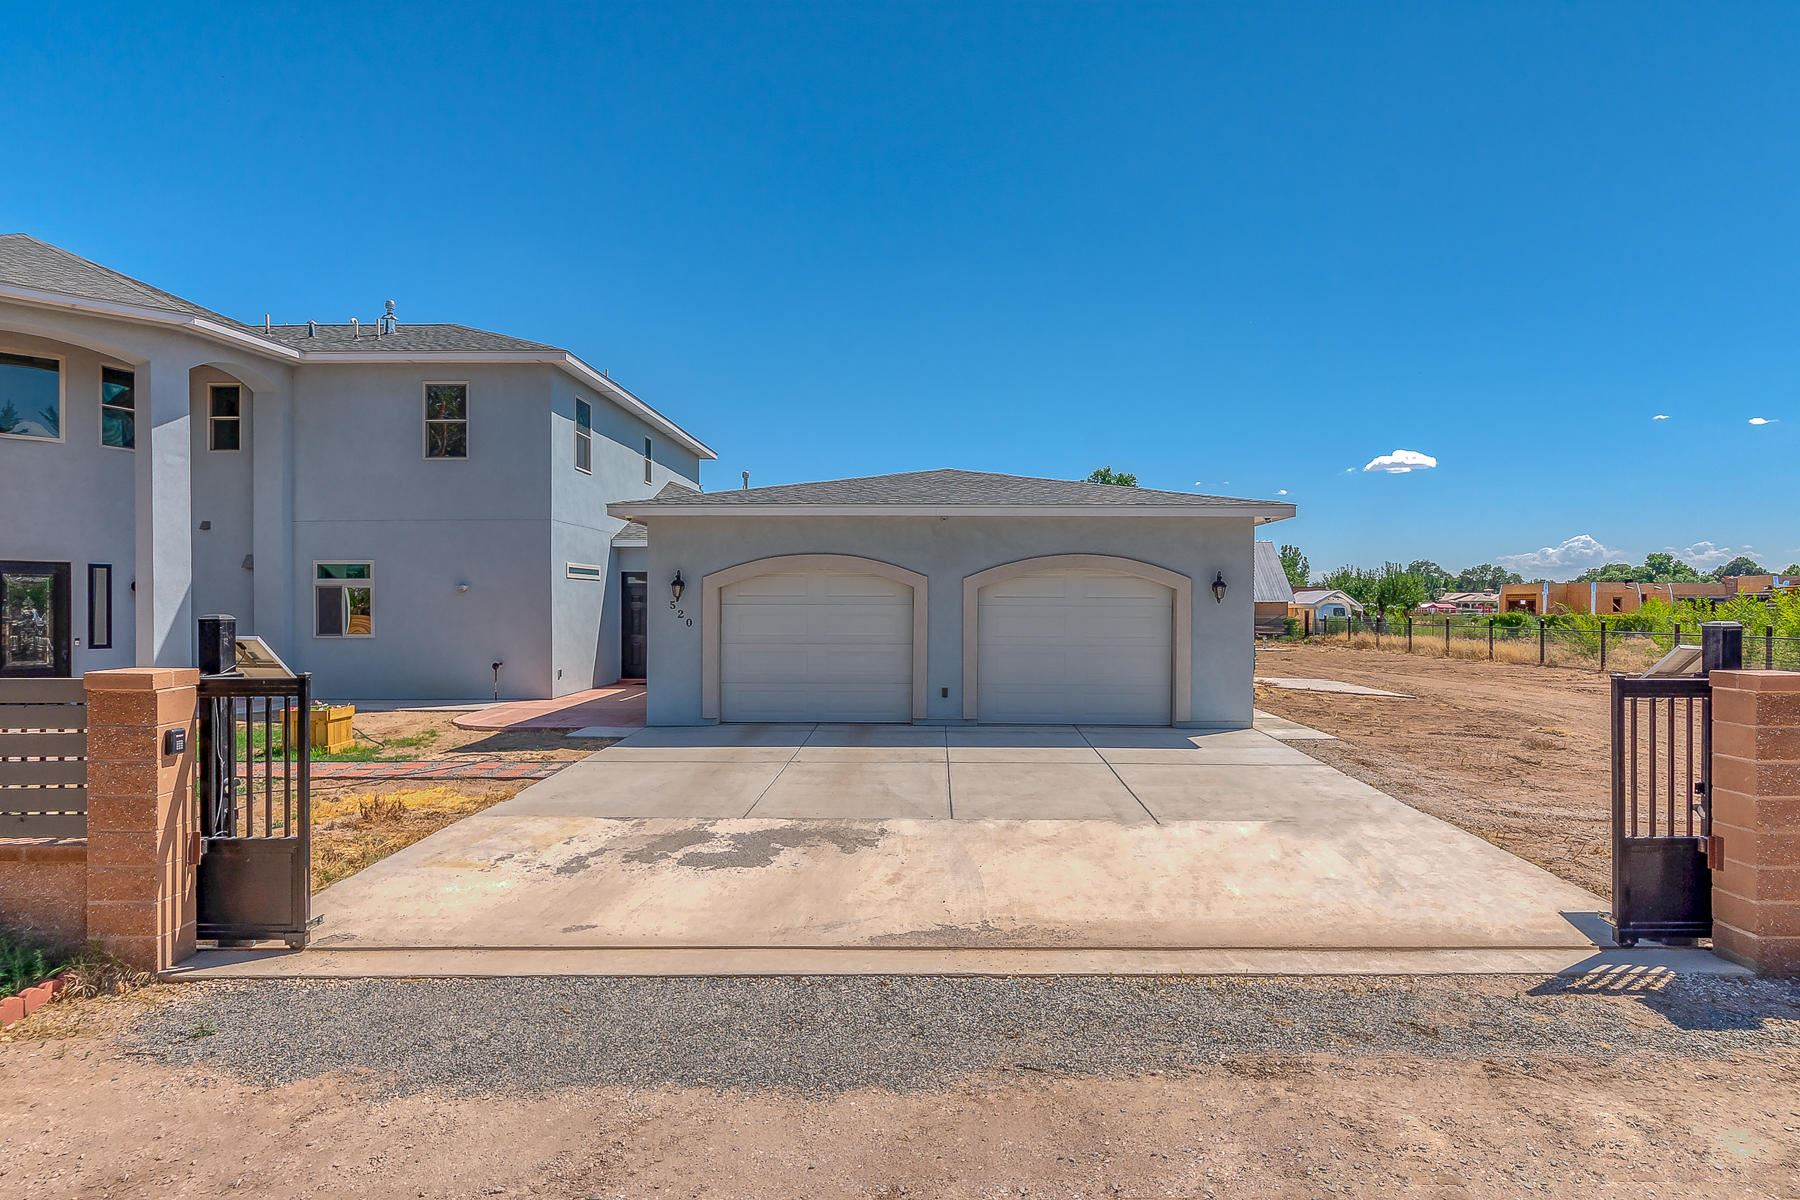 Photo of 520 Camino de Suerte NW, Albuquerque, NM 87114 (MLS # 963016)